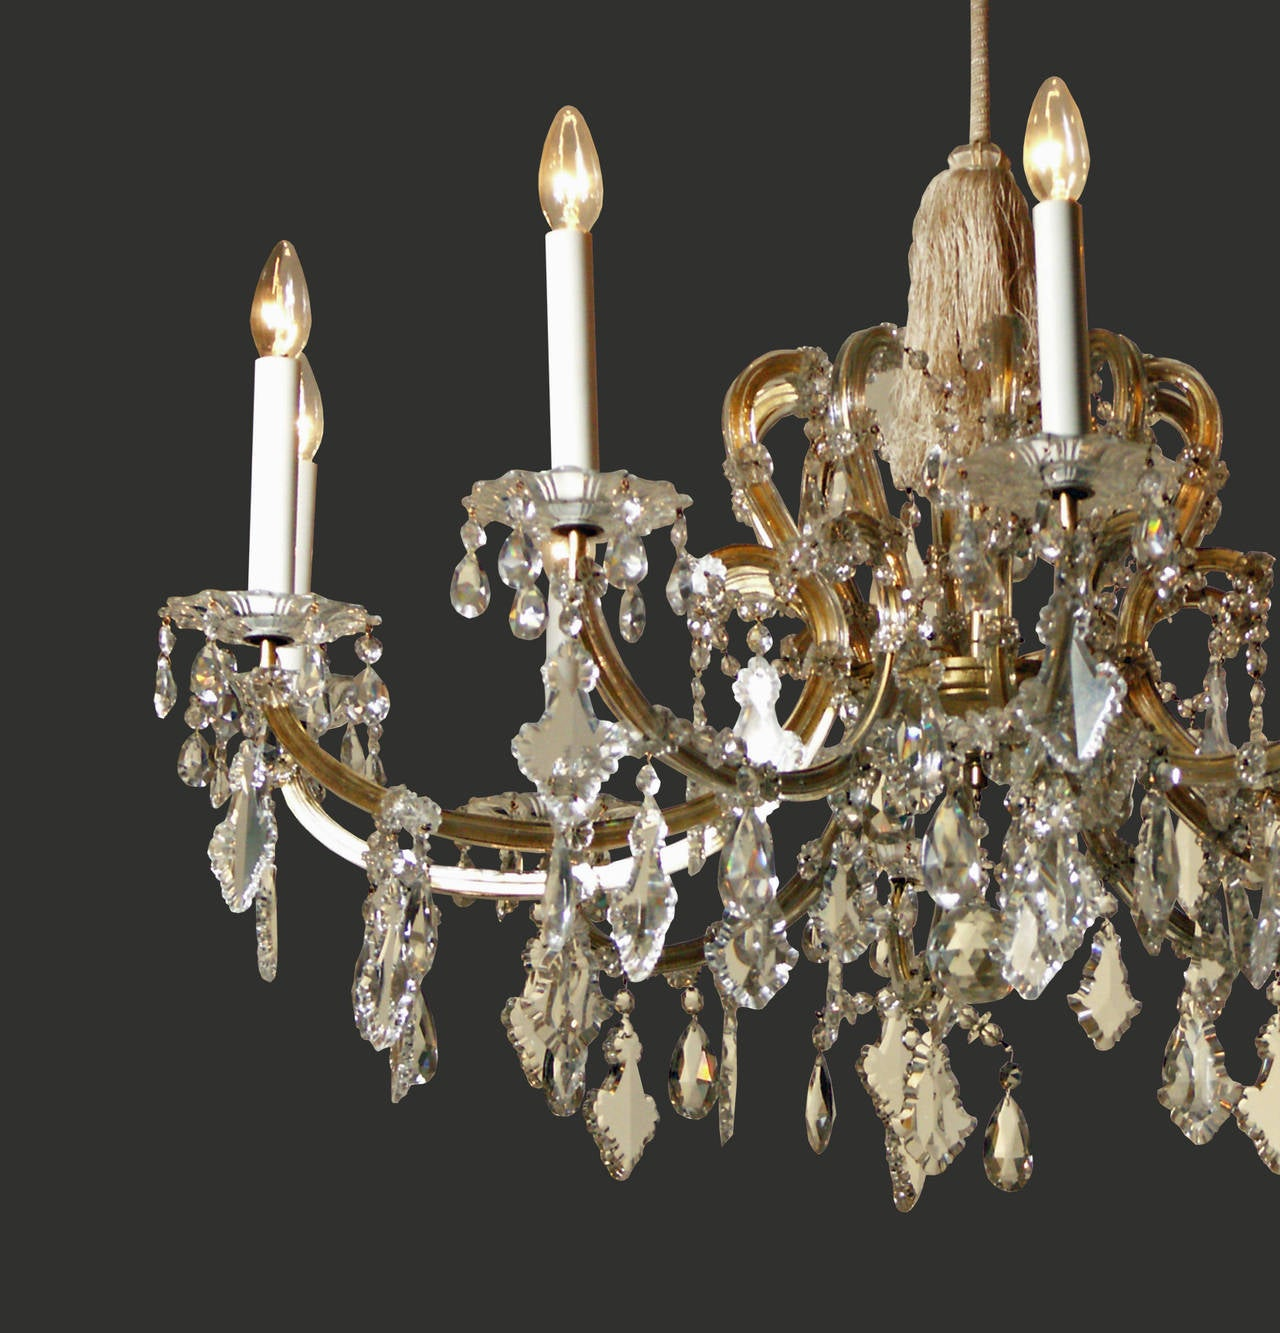 Lobmeyr viennese maria theresa chandelier for sale at 1stdibs lobmeyr viennese maria theresa chandelier 3 arubaitofo Choice Image